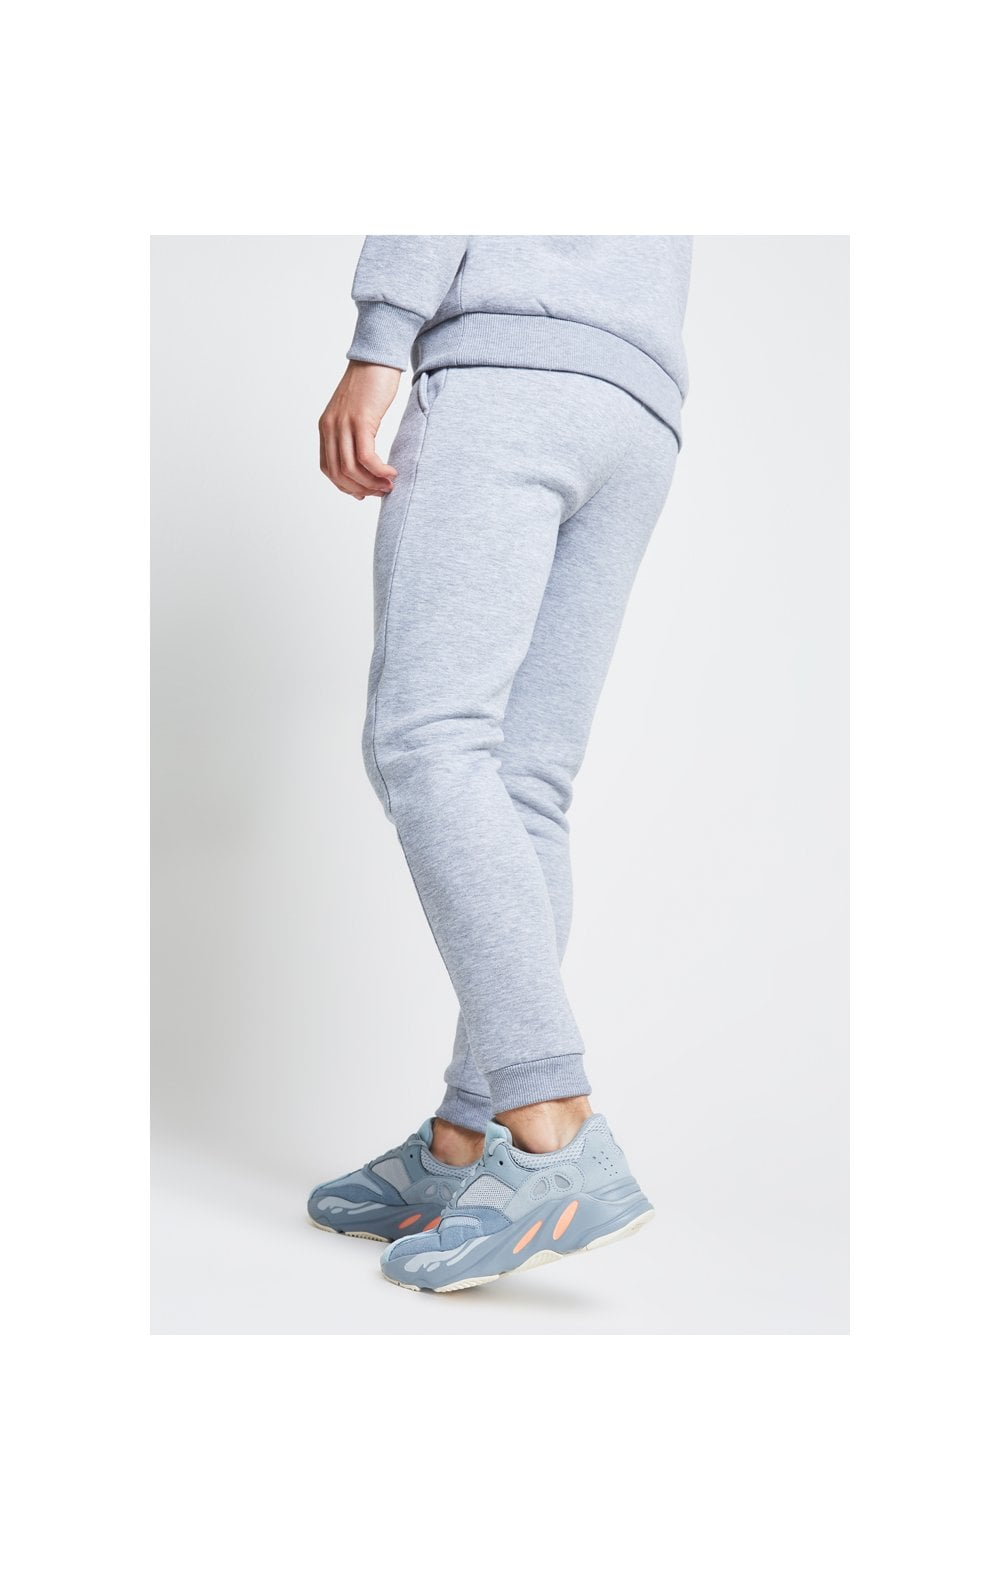 Illusive London Joggers – Grey Marl (3)